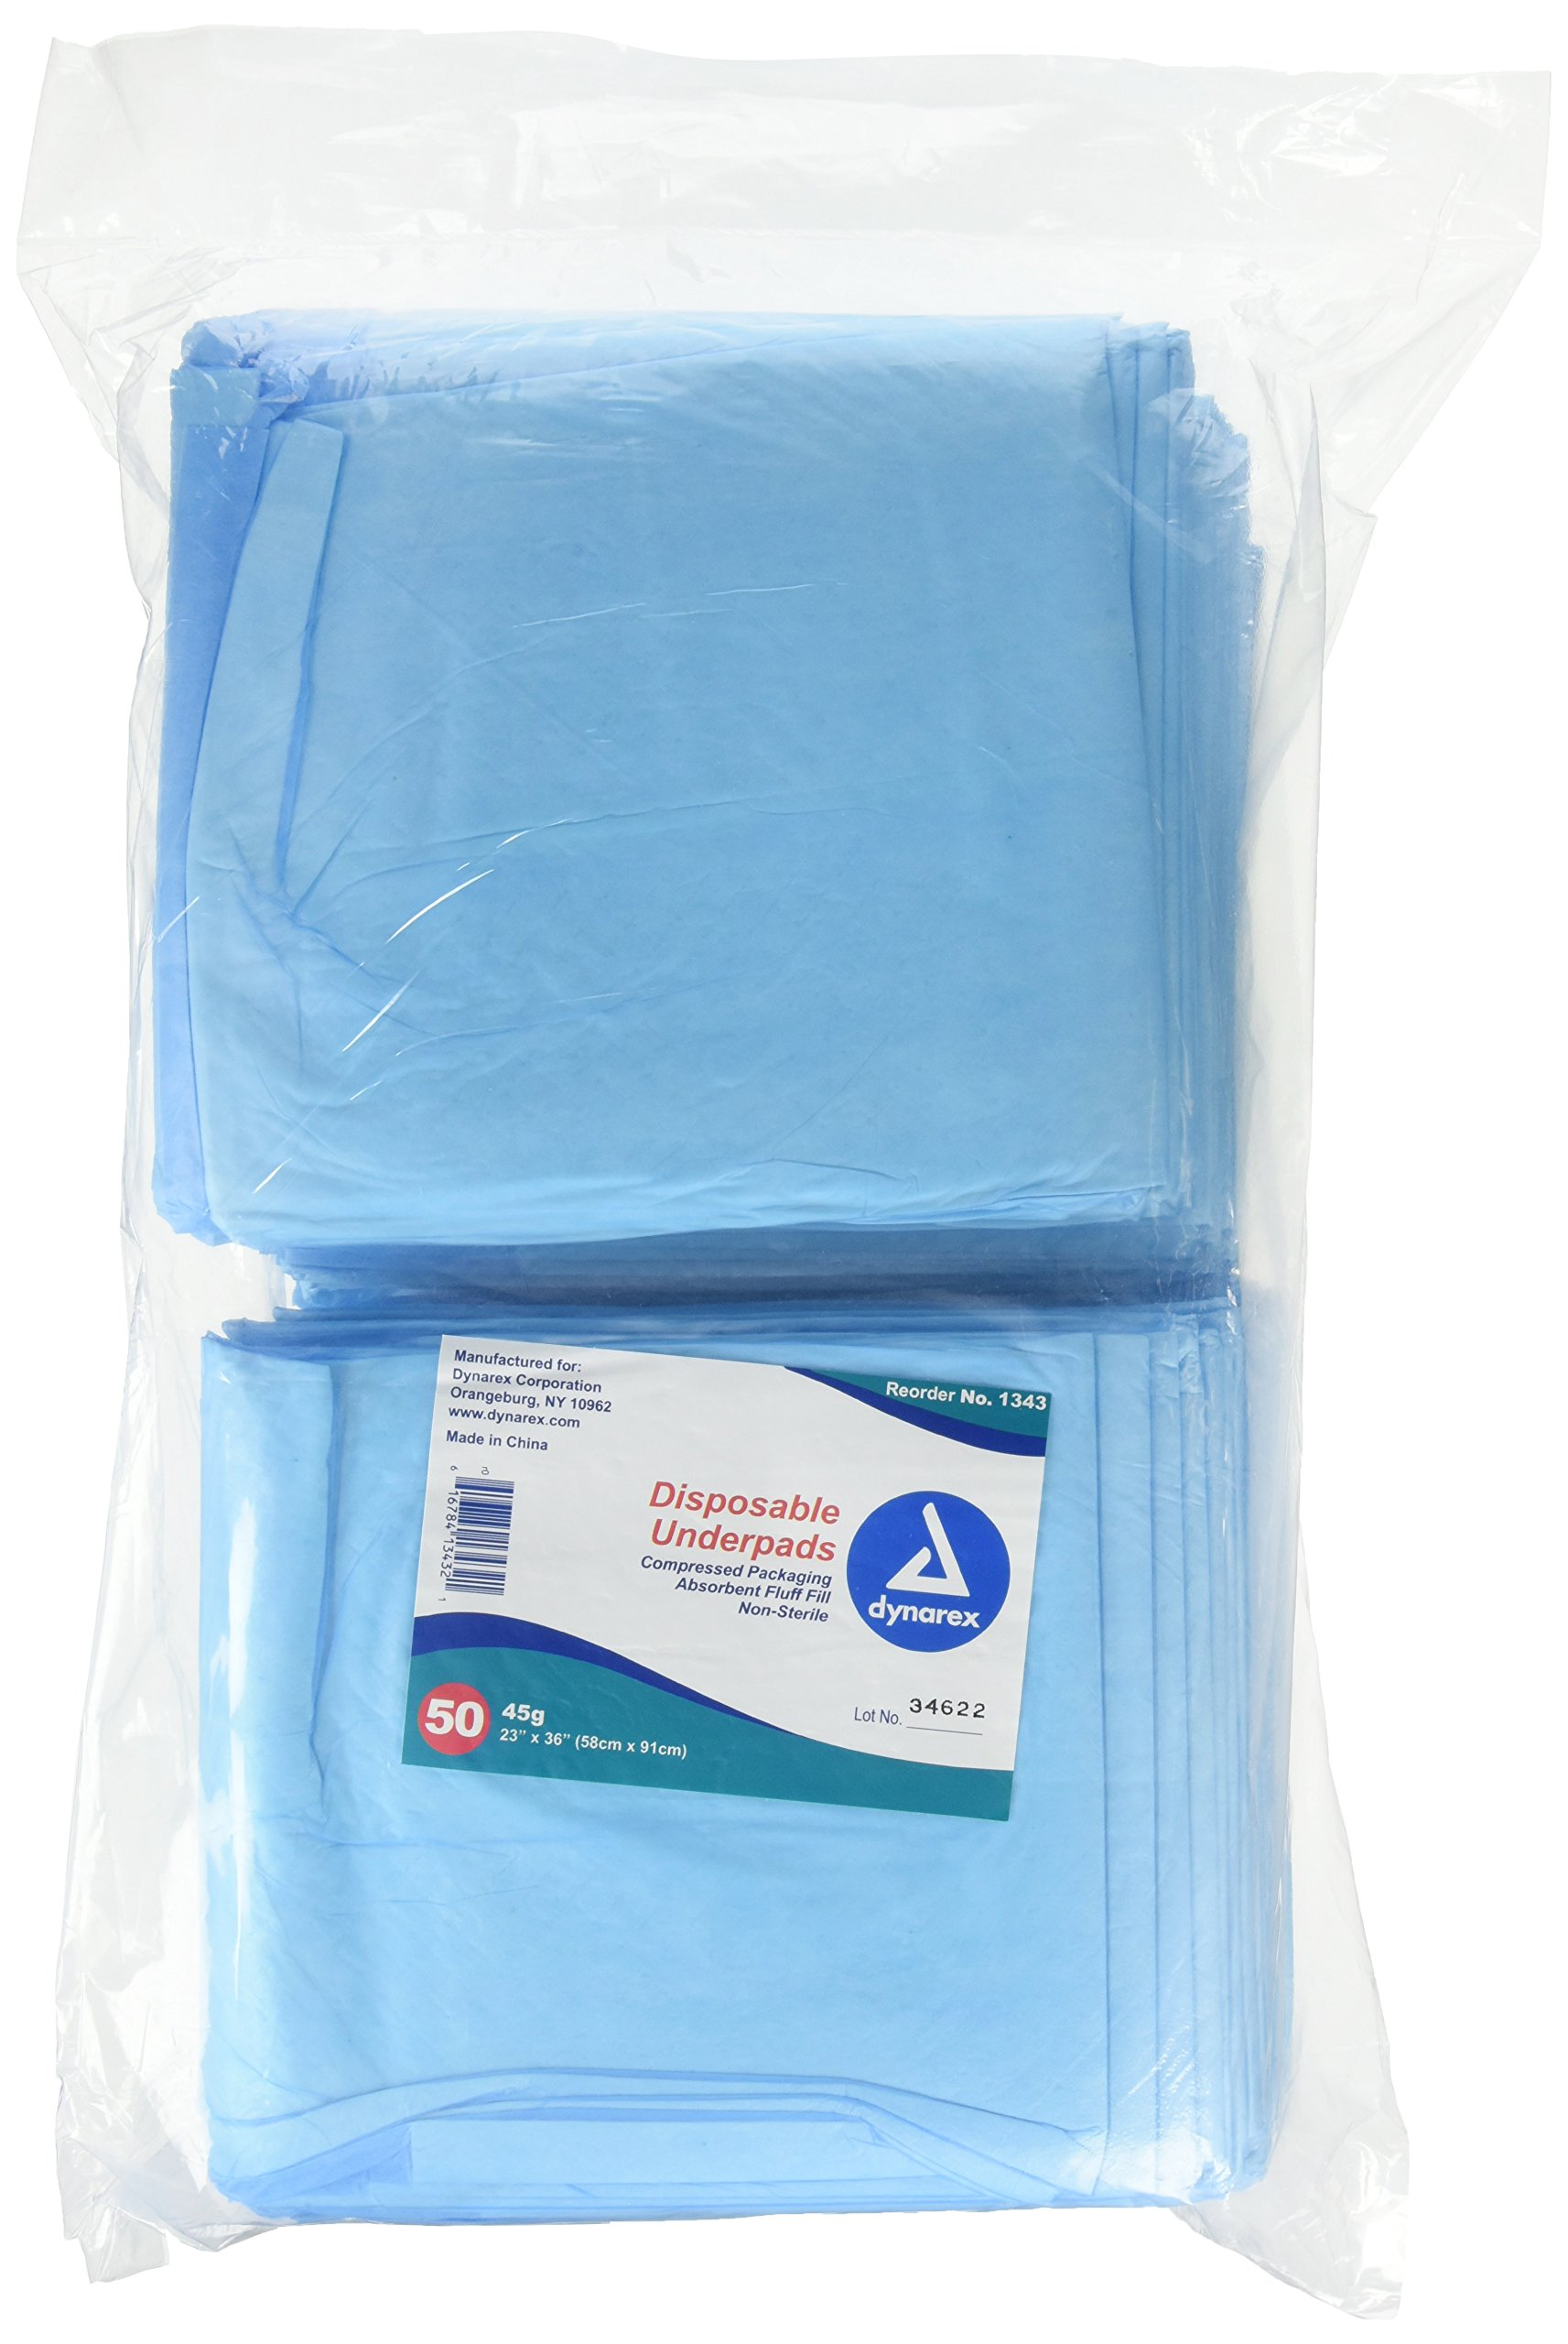 Blue Disposable Underpads (Chux), Large Size 23 X 36, Case/100 2 Bags of 50